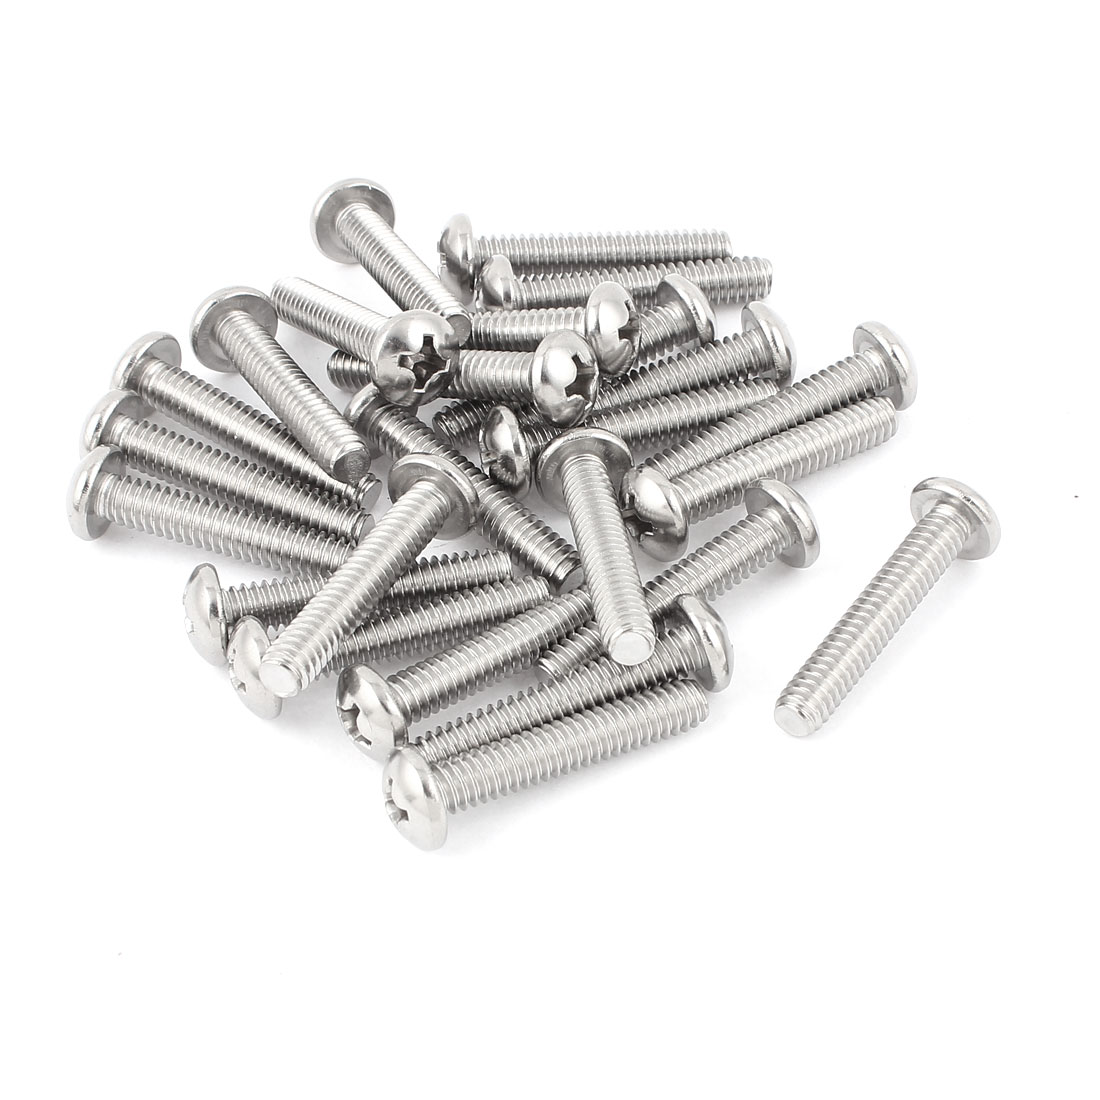 "39mm Long 1/4""x20x1-3/8"" Stainless Steel Phillips Cross Head Screws Bolts 25 Pcs"